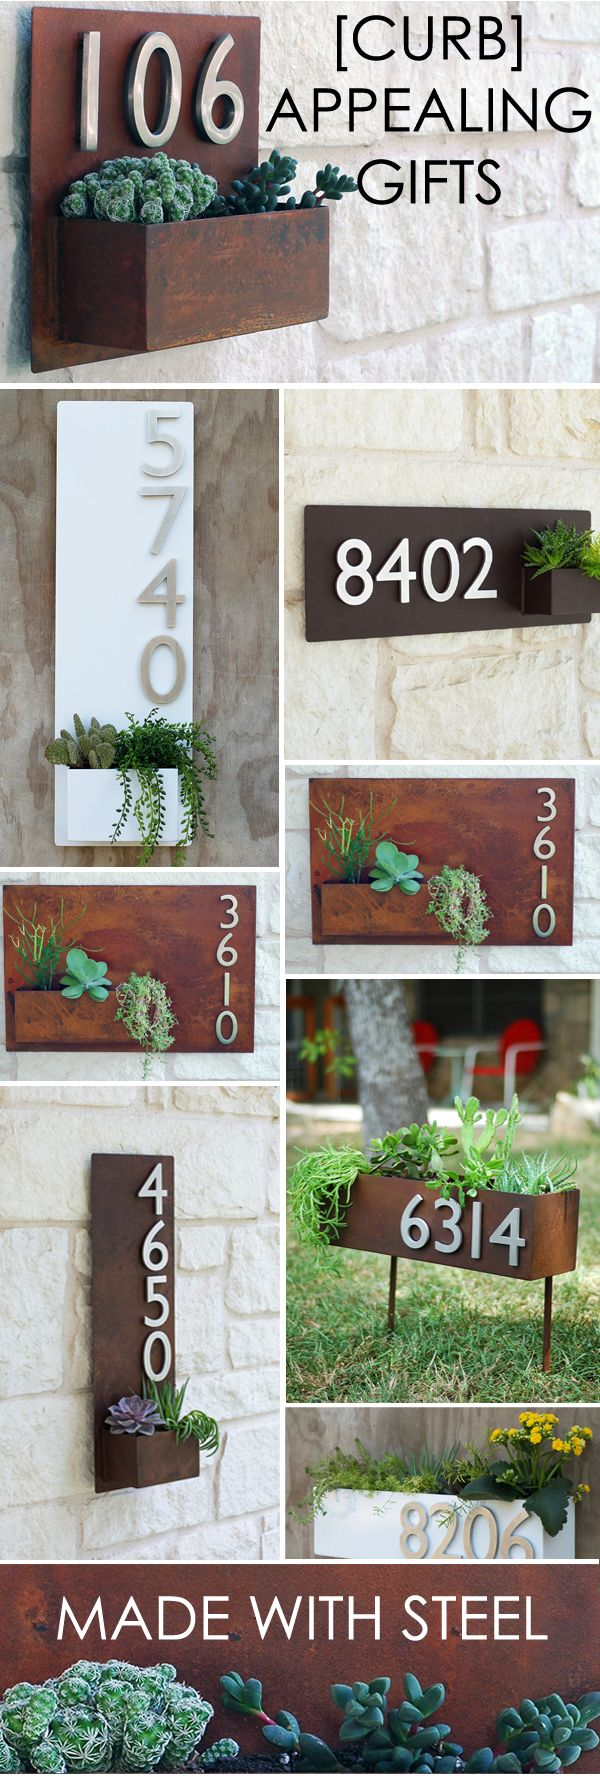 Urban Mettle's modern wall planters are created with a commitment to quality and a love for succulents! These modern outdoor planters and address plaques will add instant curb appeal to your home.